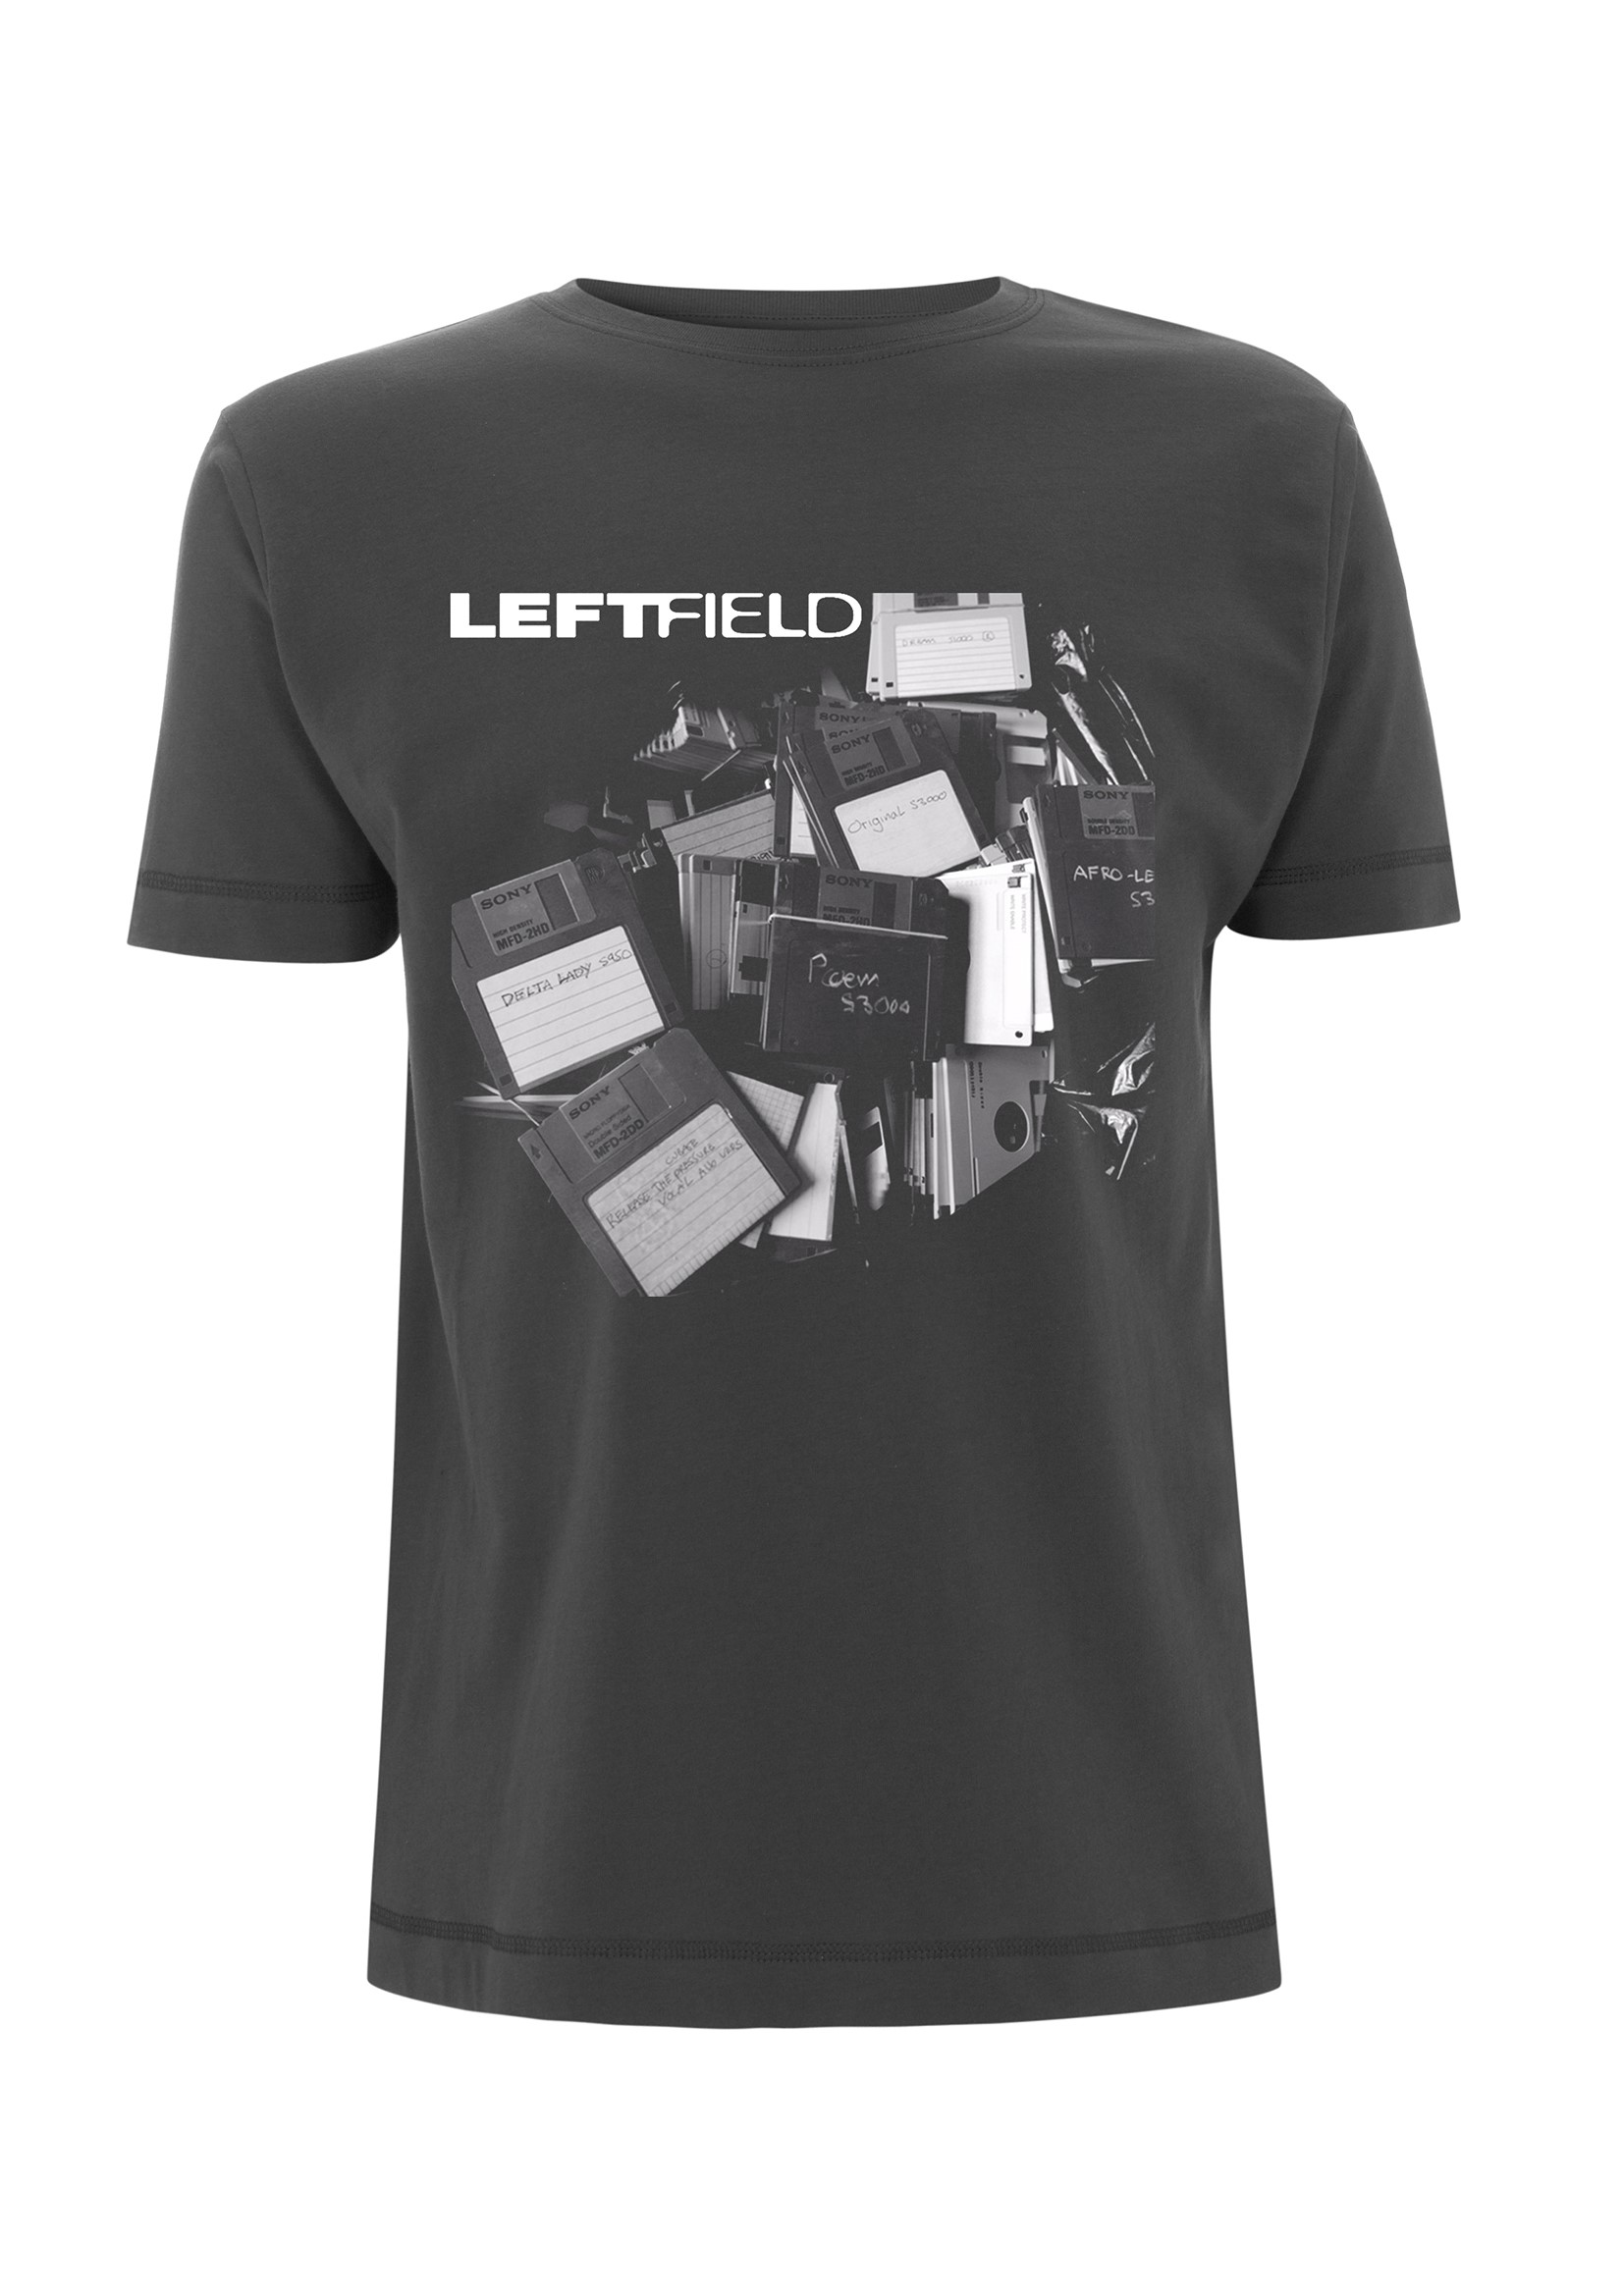 Floppy Discs – Charcoal Tee - Leftfield